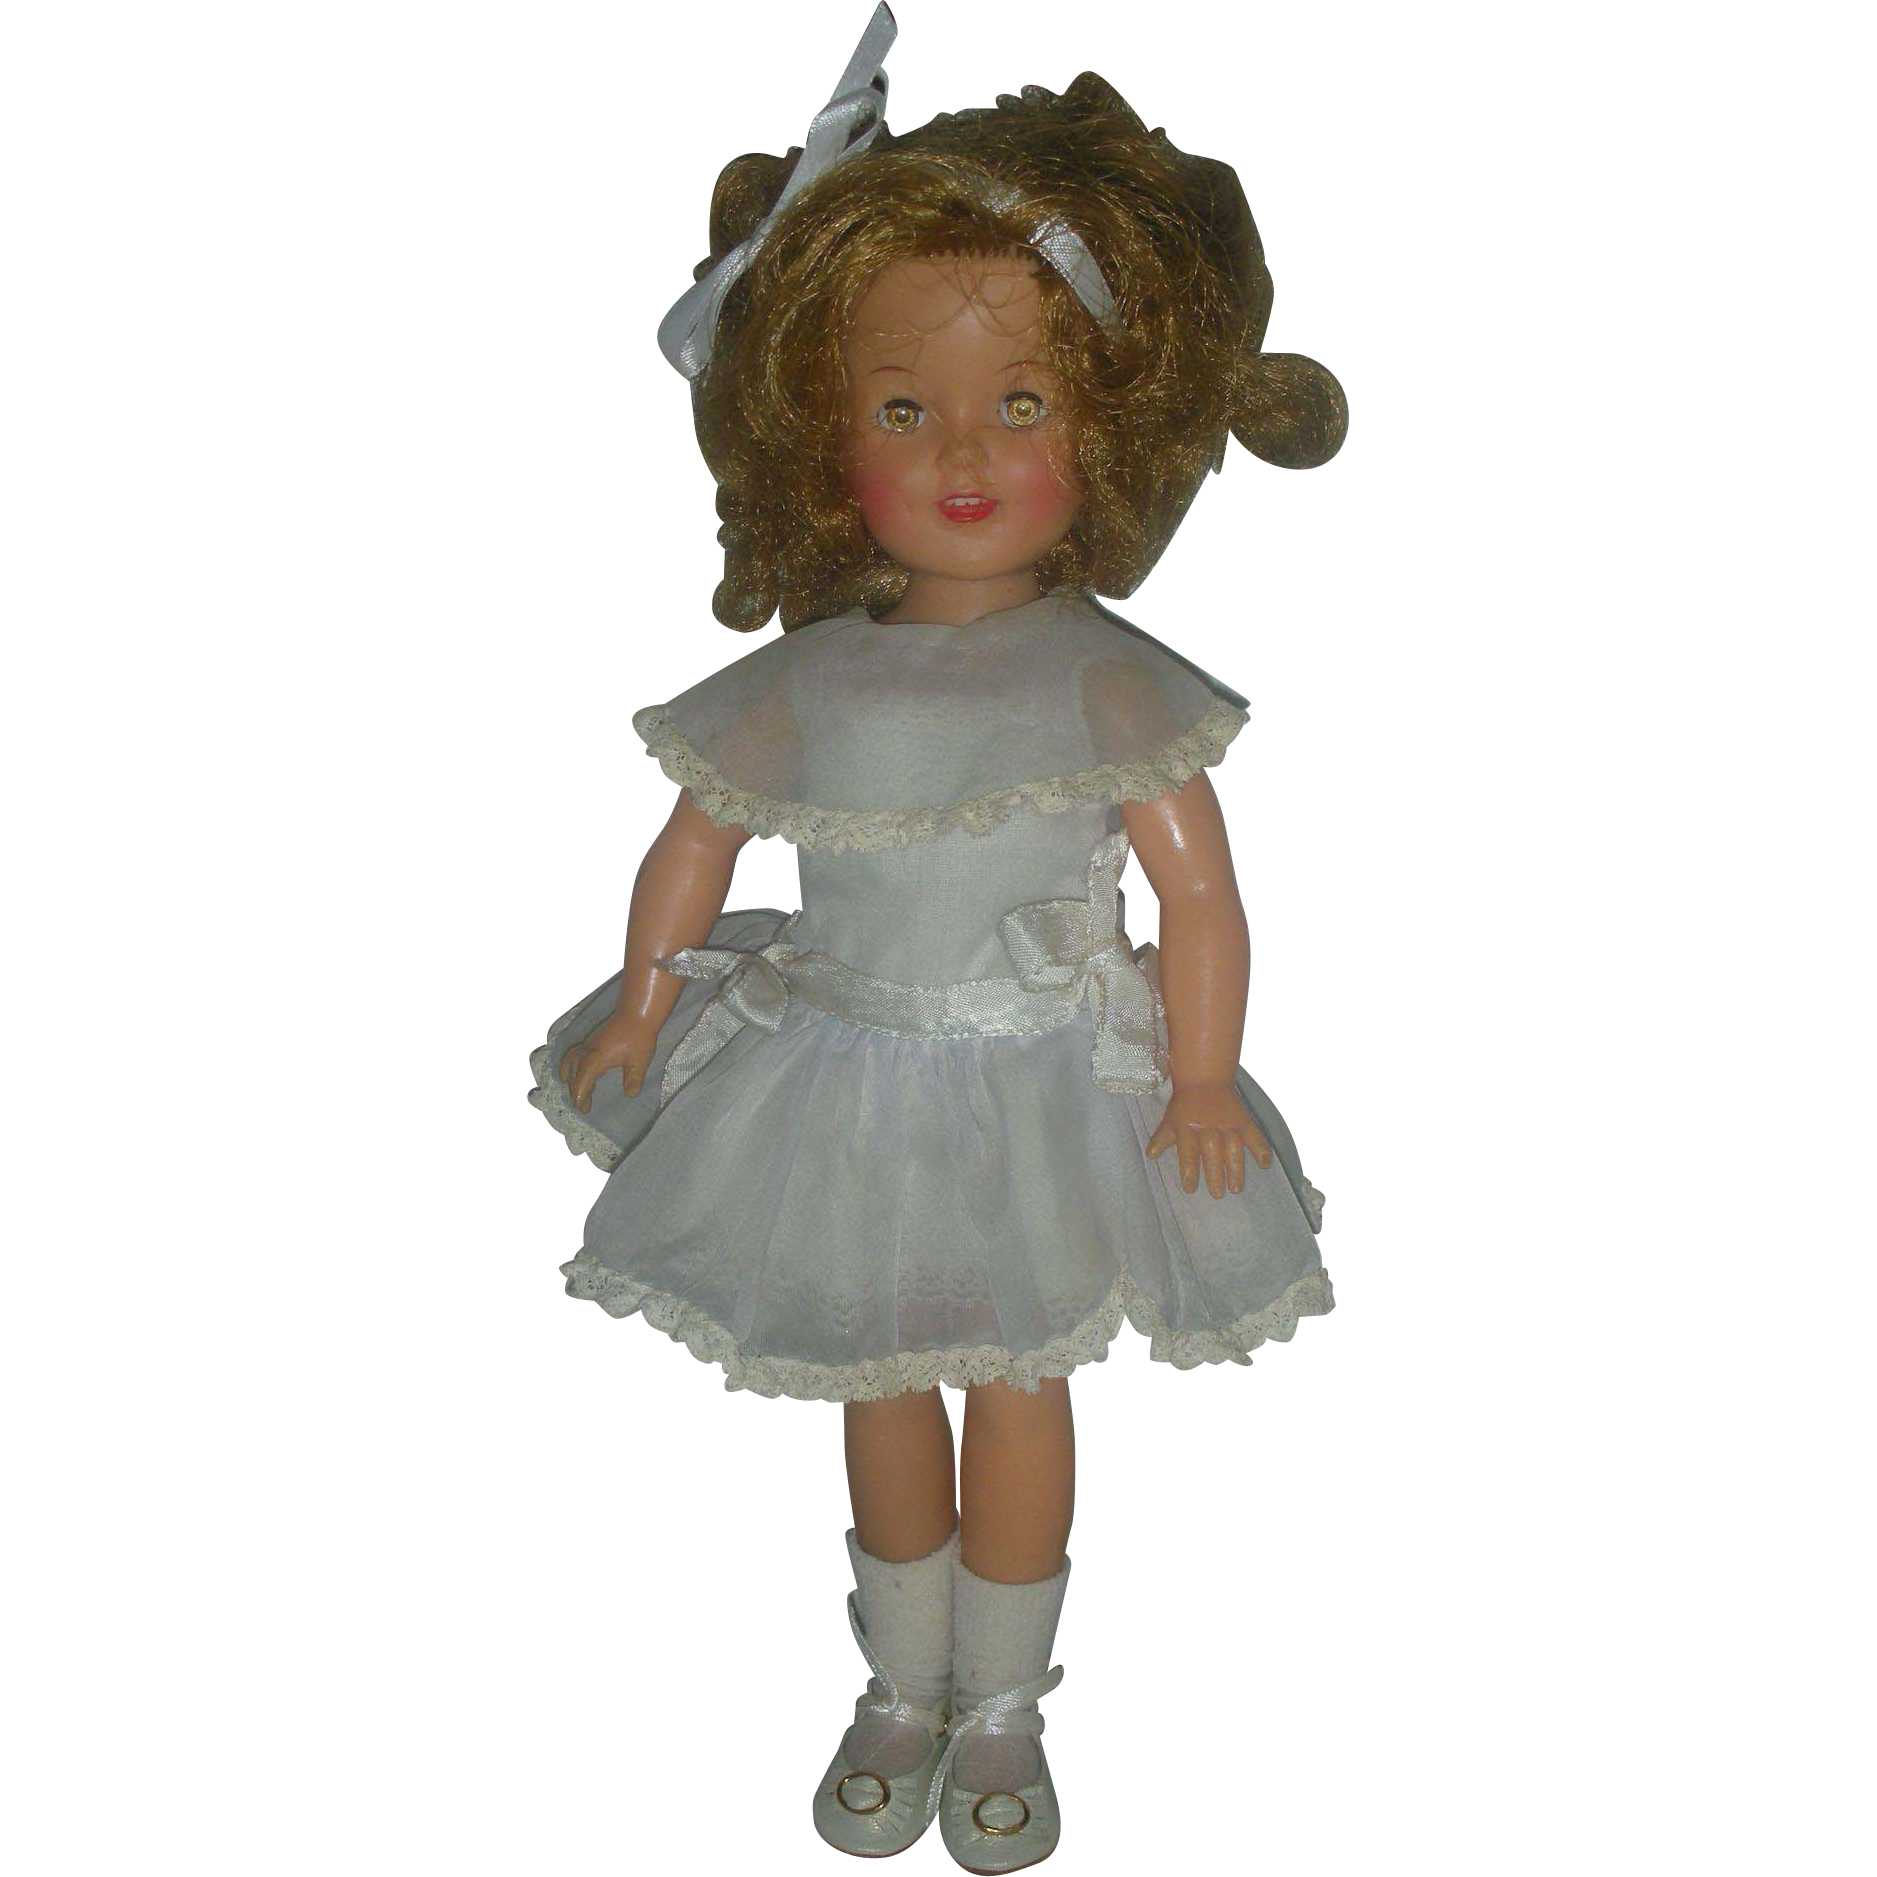 Vintage 1950s Vinyl Shirley Temple 12 inch Doll